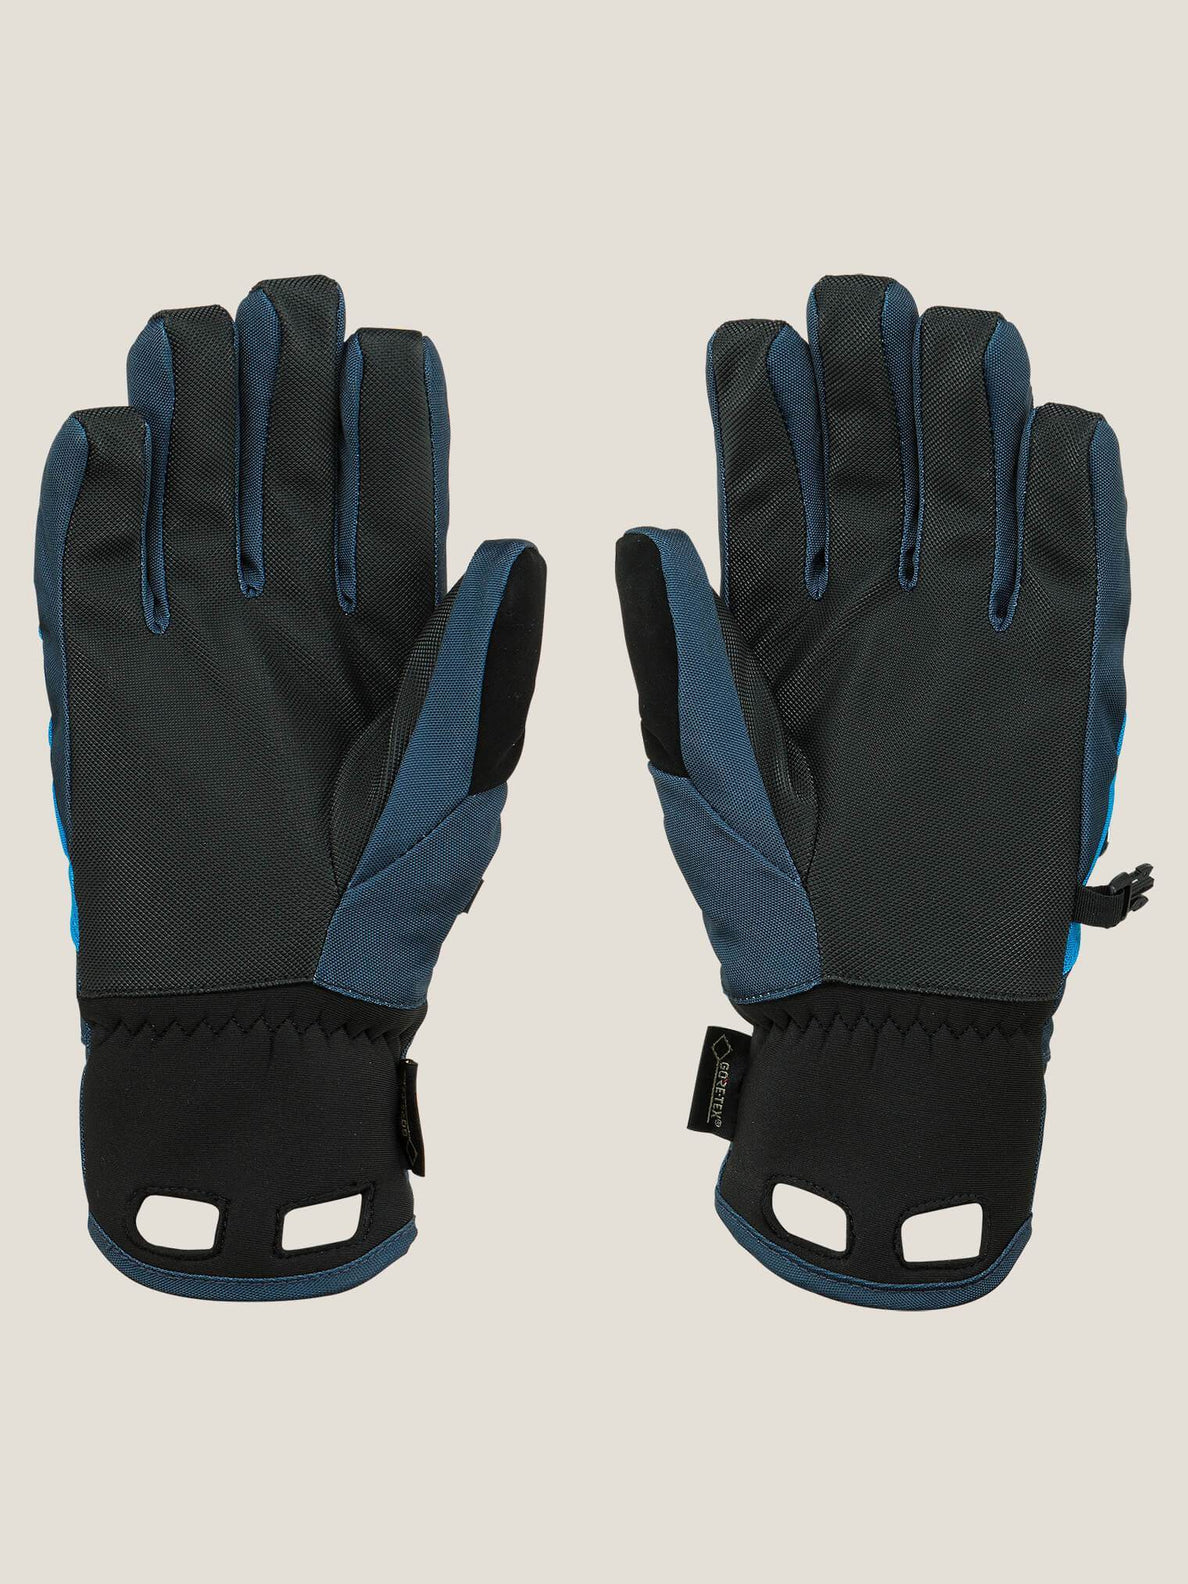 Cp2 Gore-tex® Glove In Vintage Navy, Back View